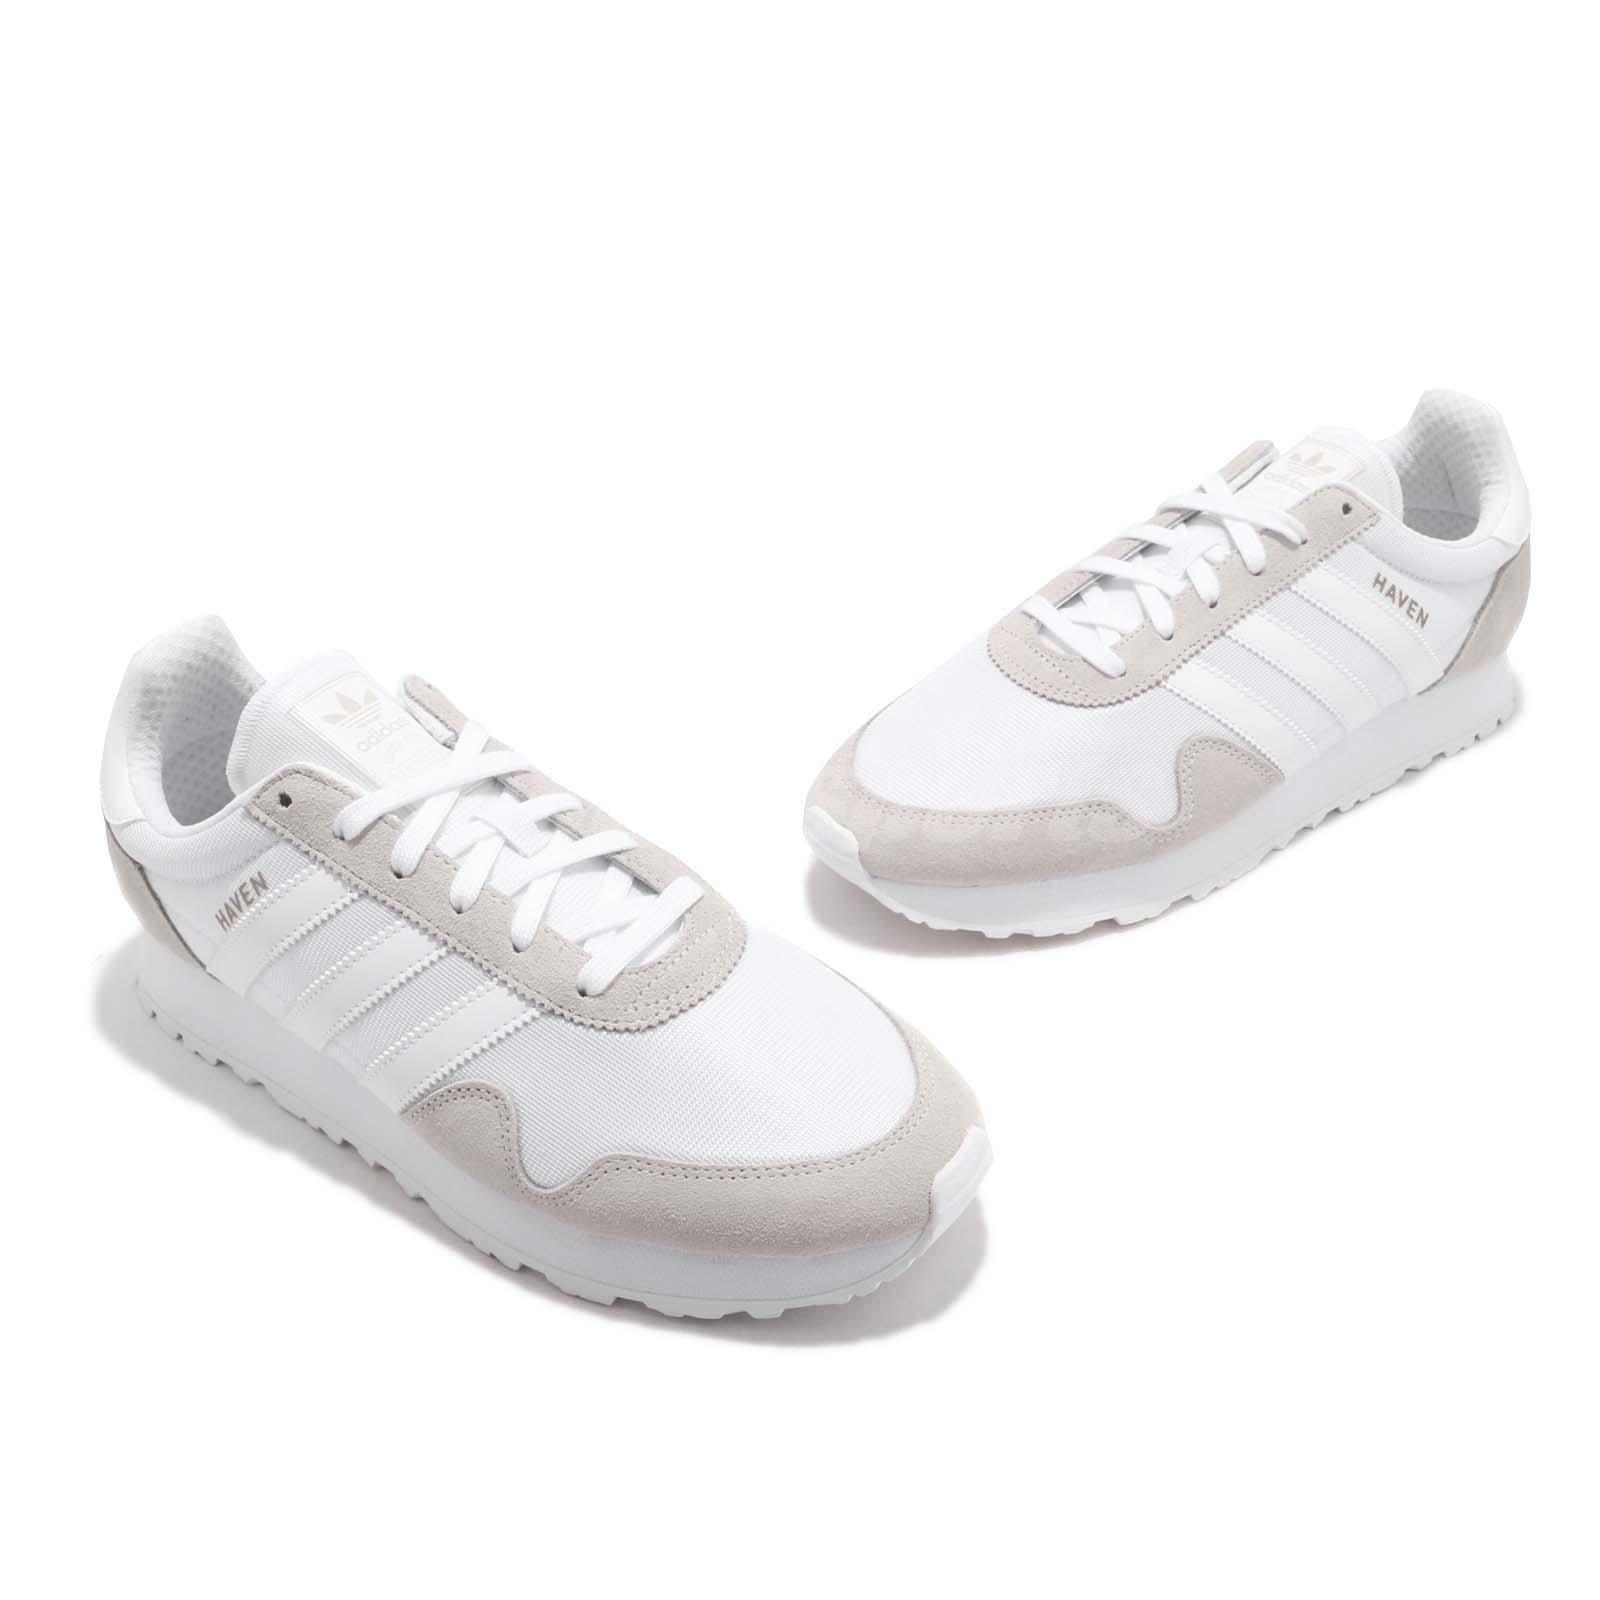 Details about adidas Originals Haven Vintage White Grey Men Running Shoes Sneakers BY9718